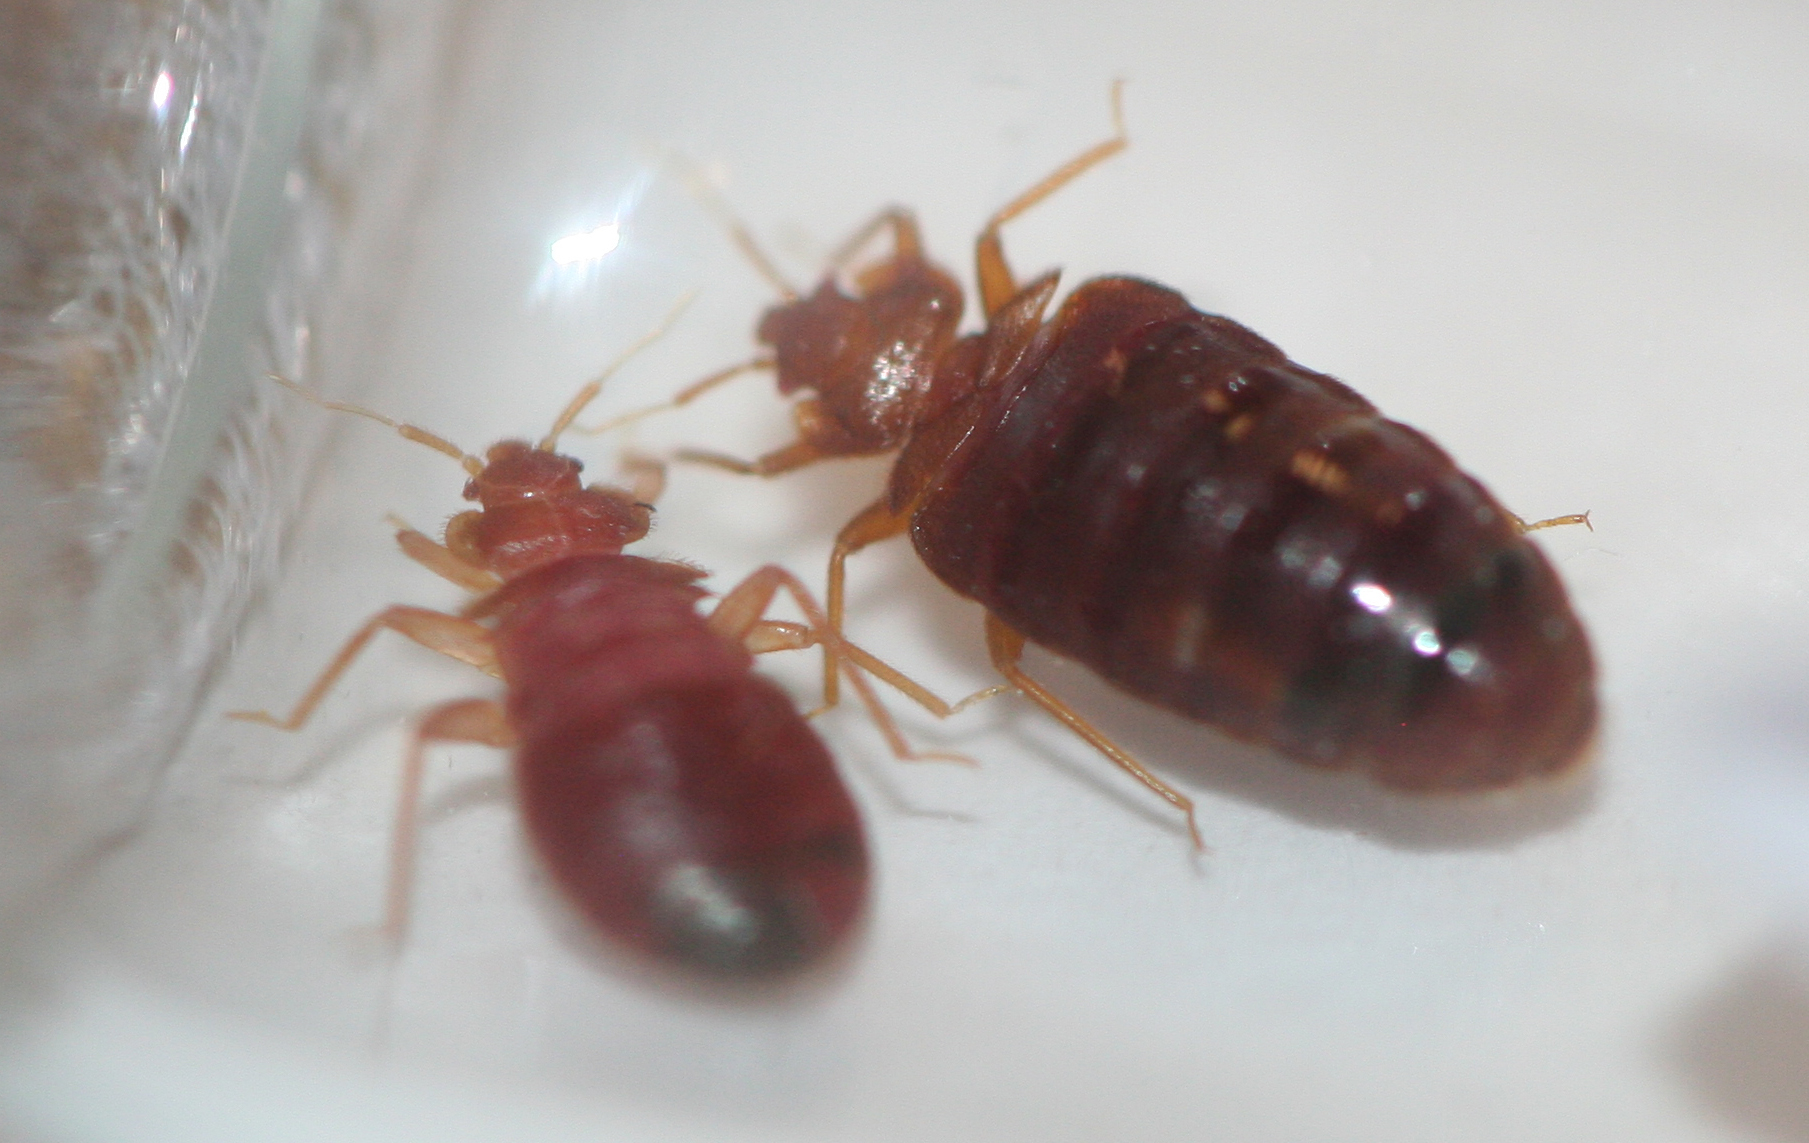 How To Check Your Hotel For Bed Bugs